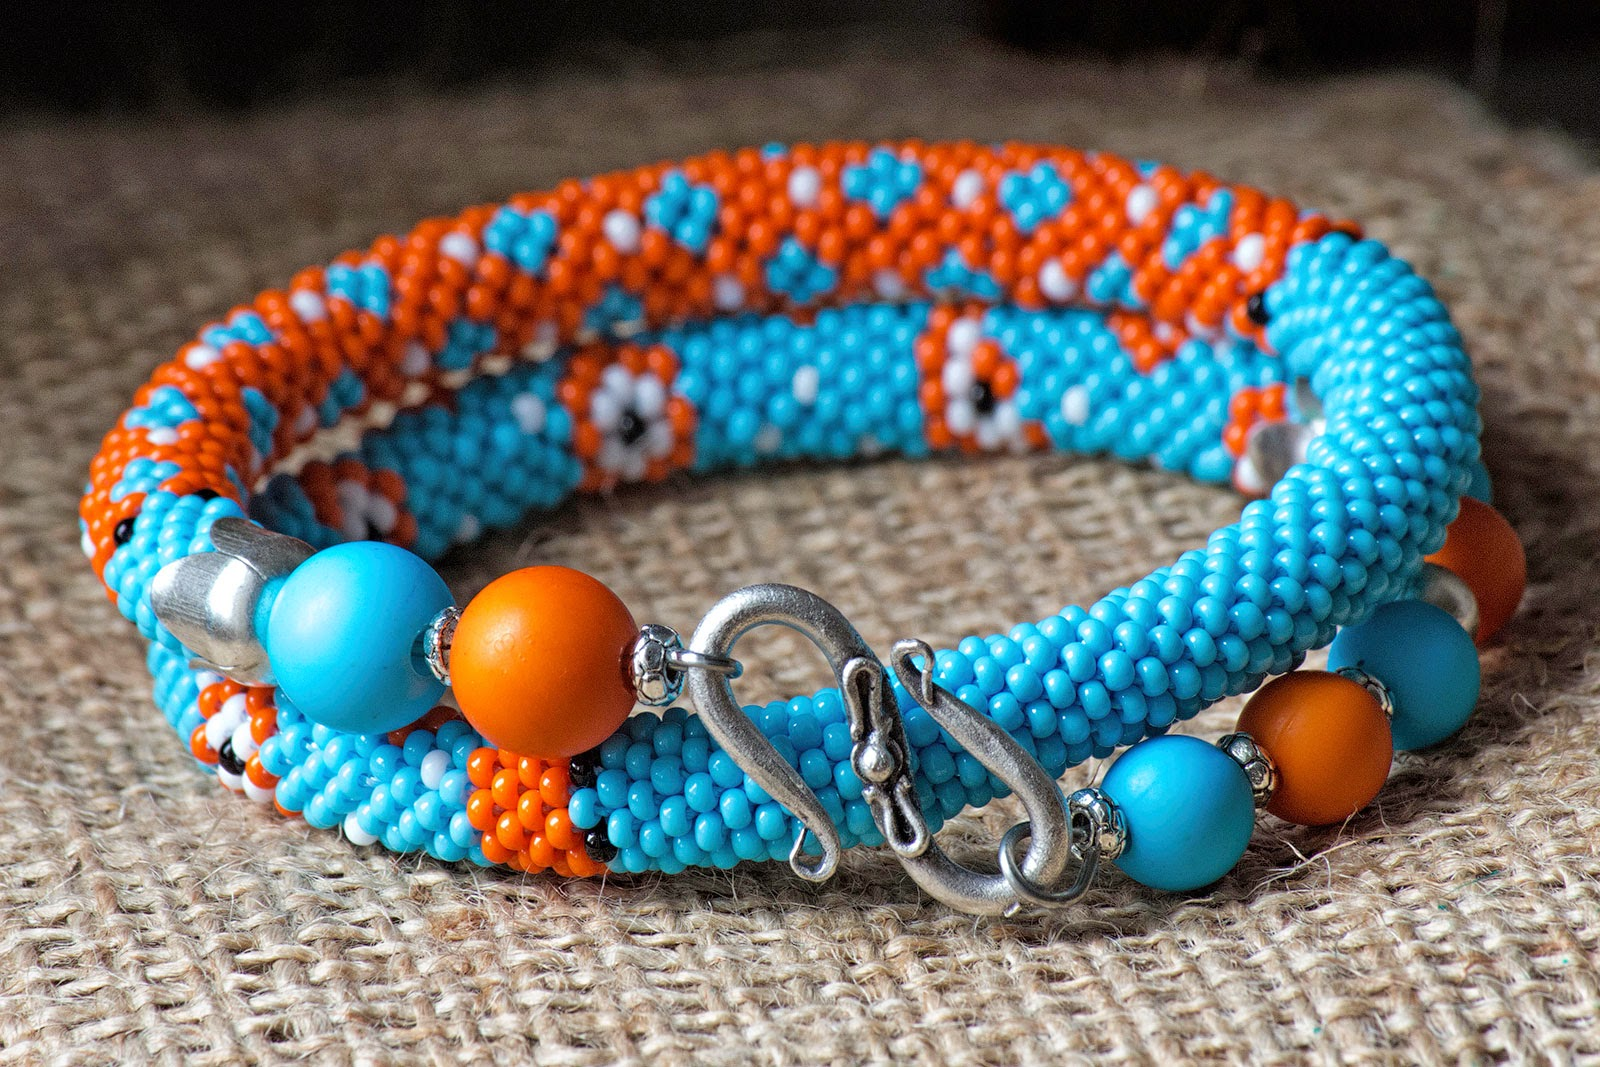 etsy shop beads crochet crocheted rope handmade handcrafted jewellery bracelet jewelry beadwork orange blue seed beads czech fashion chic